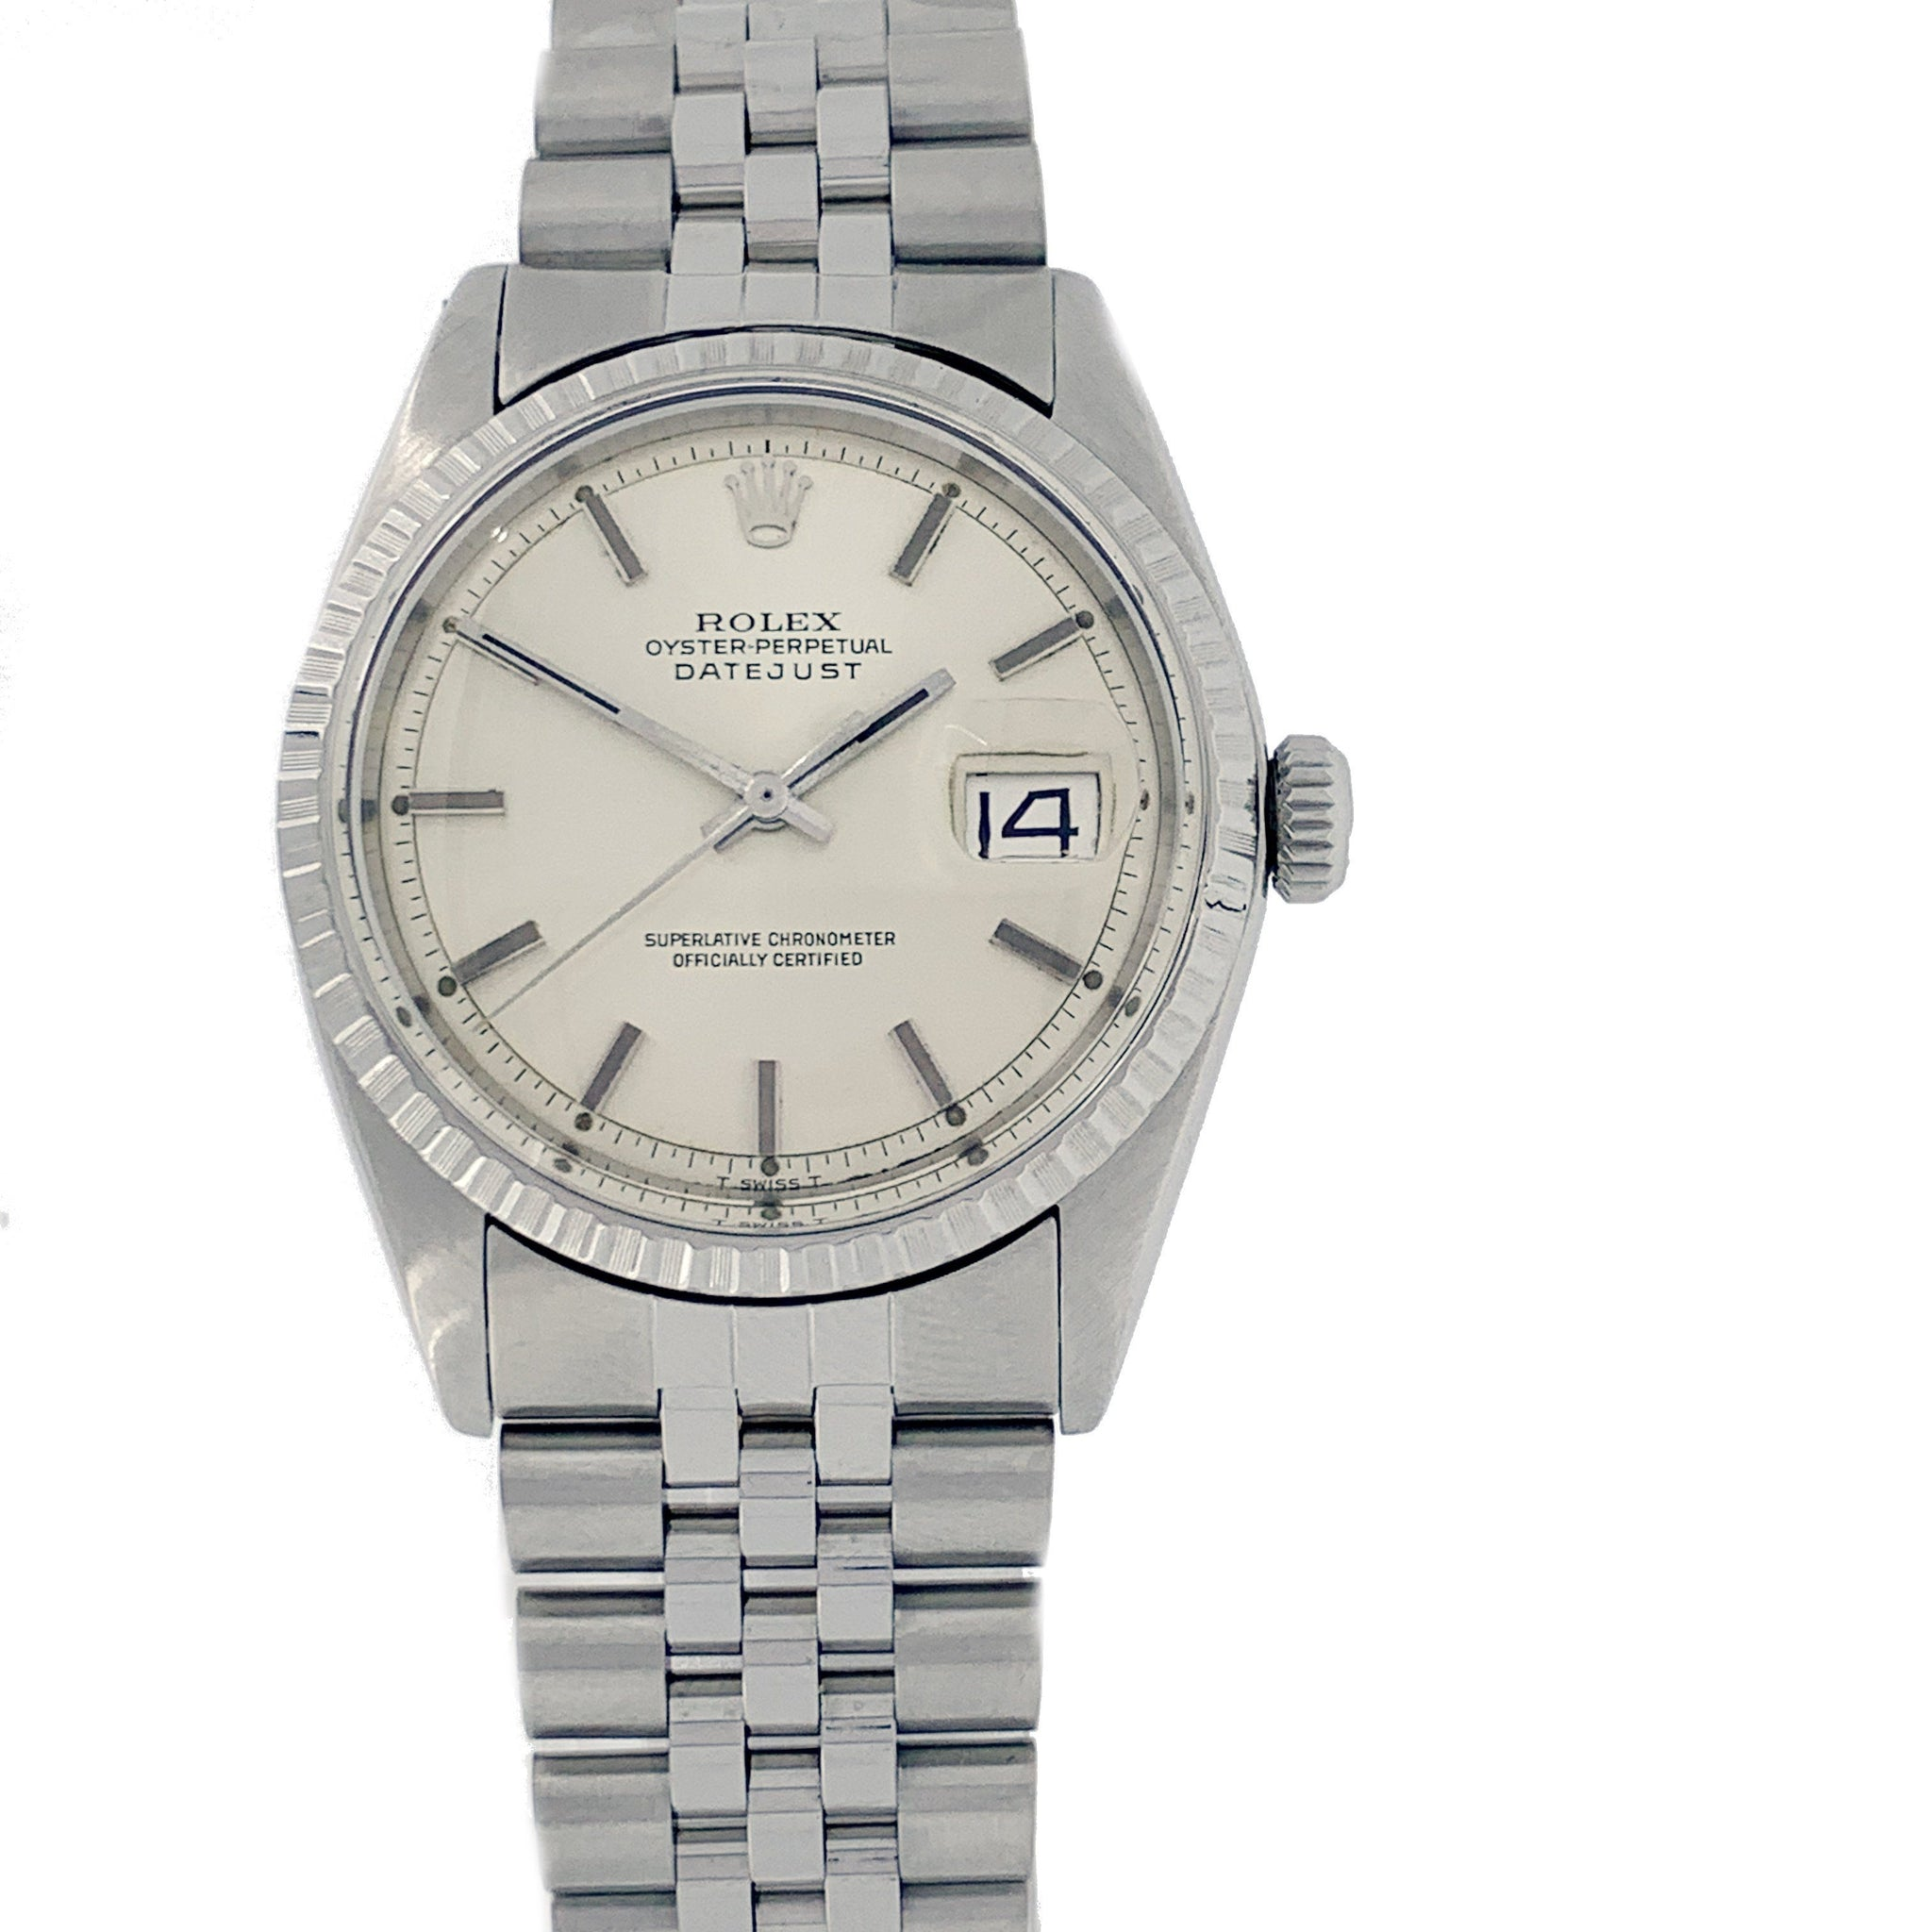 Rolex Datejust 36mm 1970 - 1603